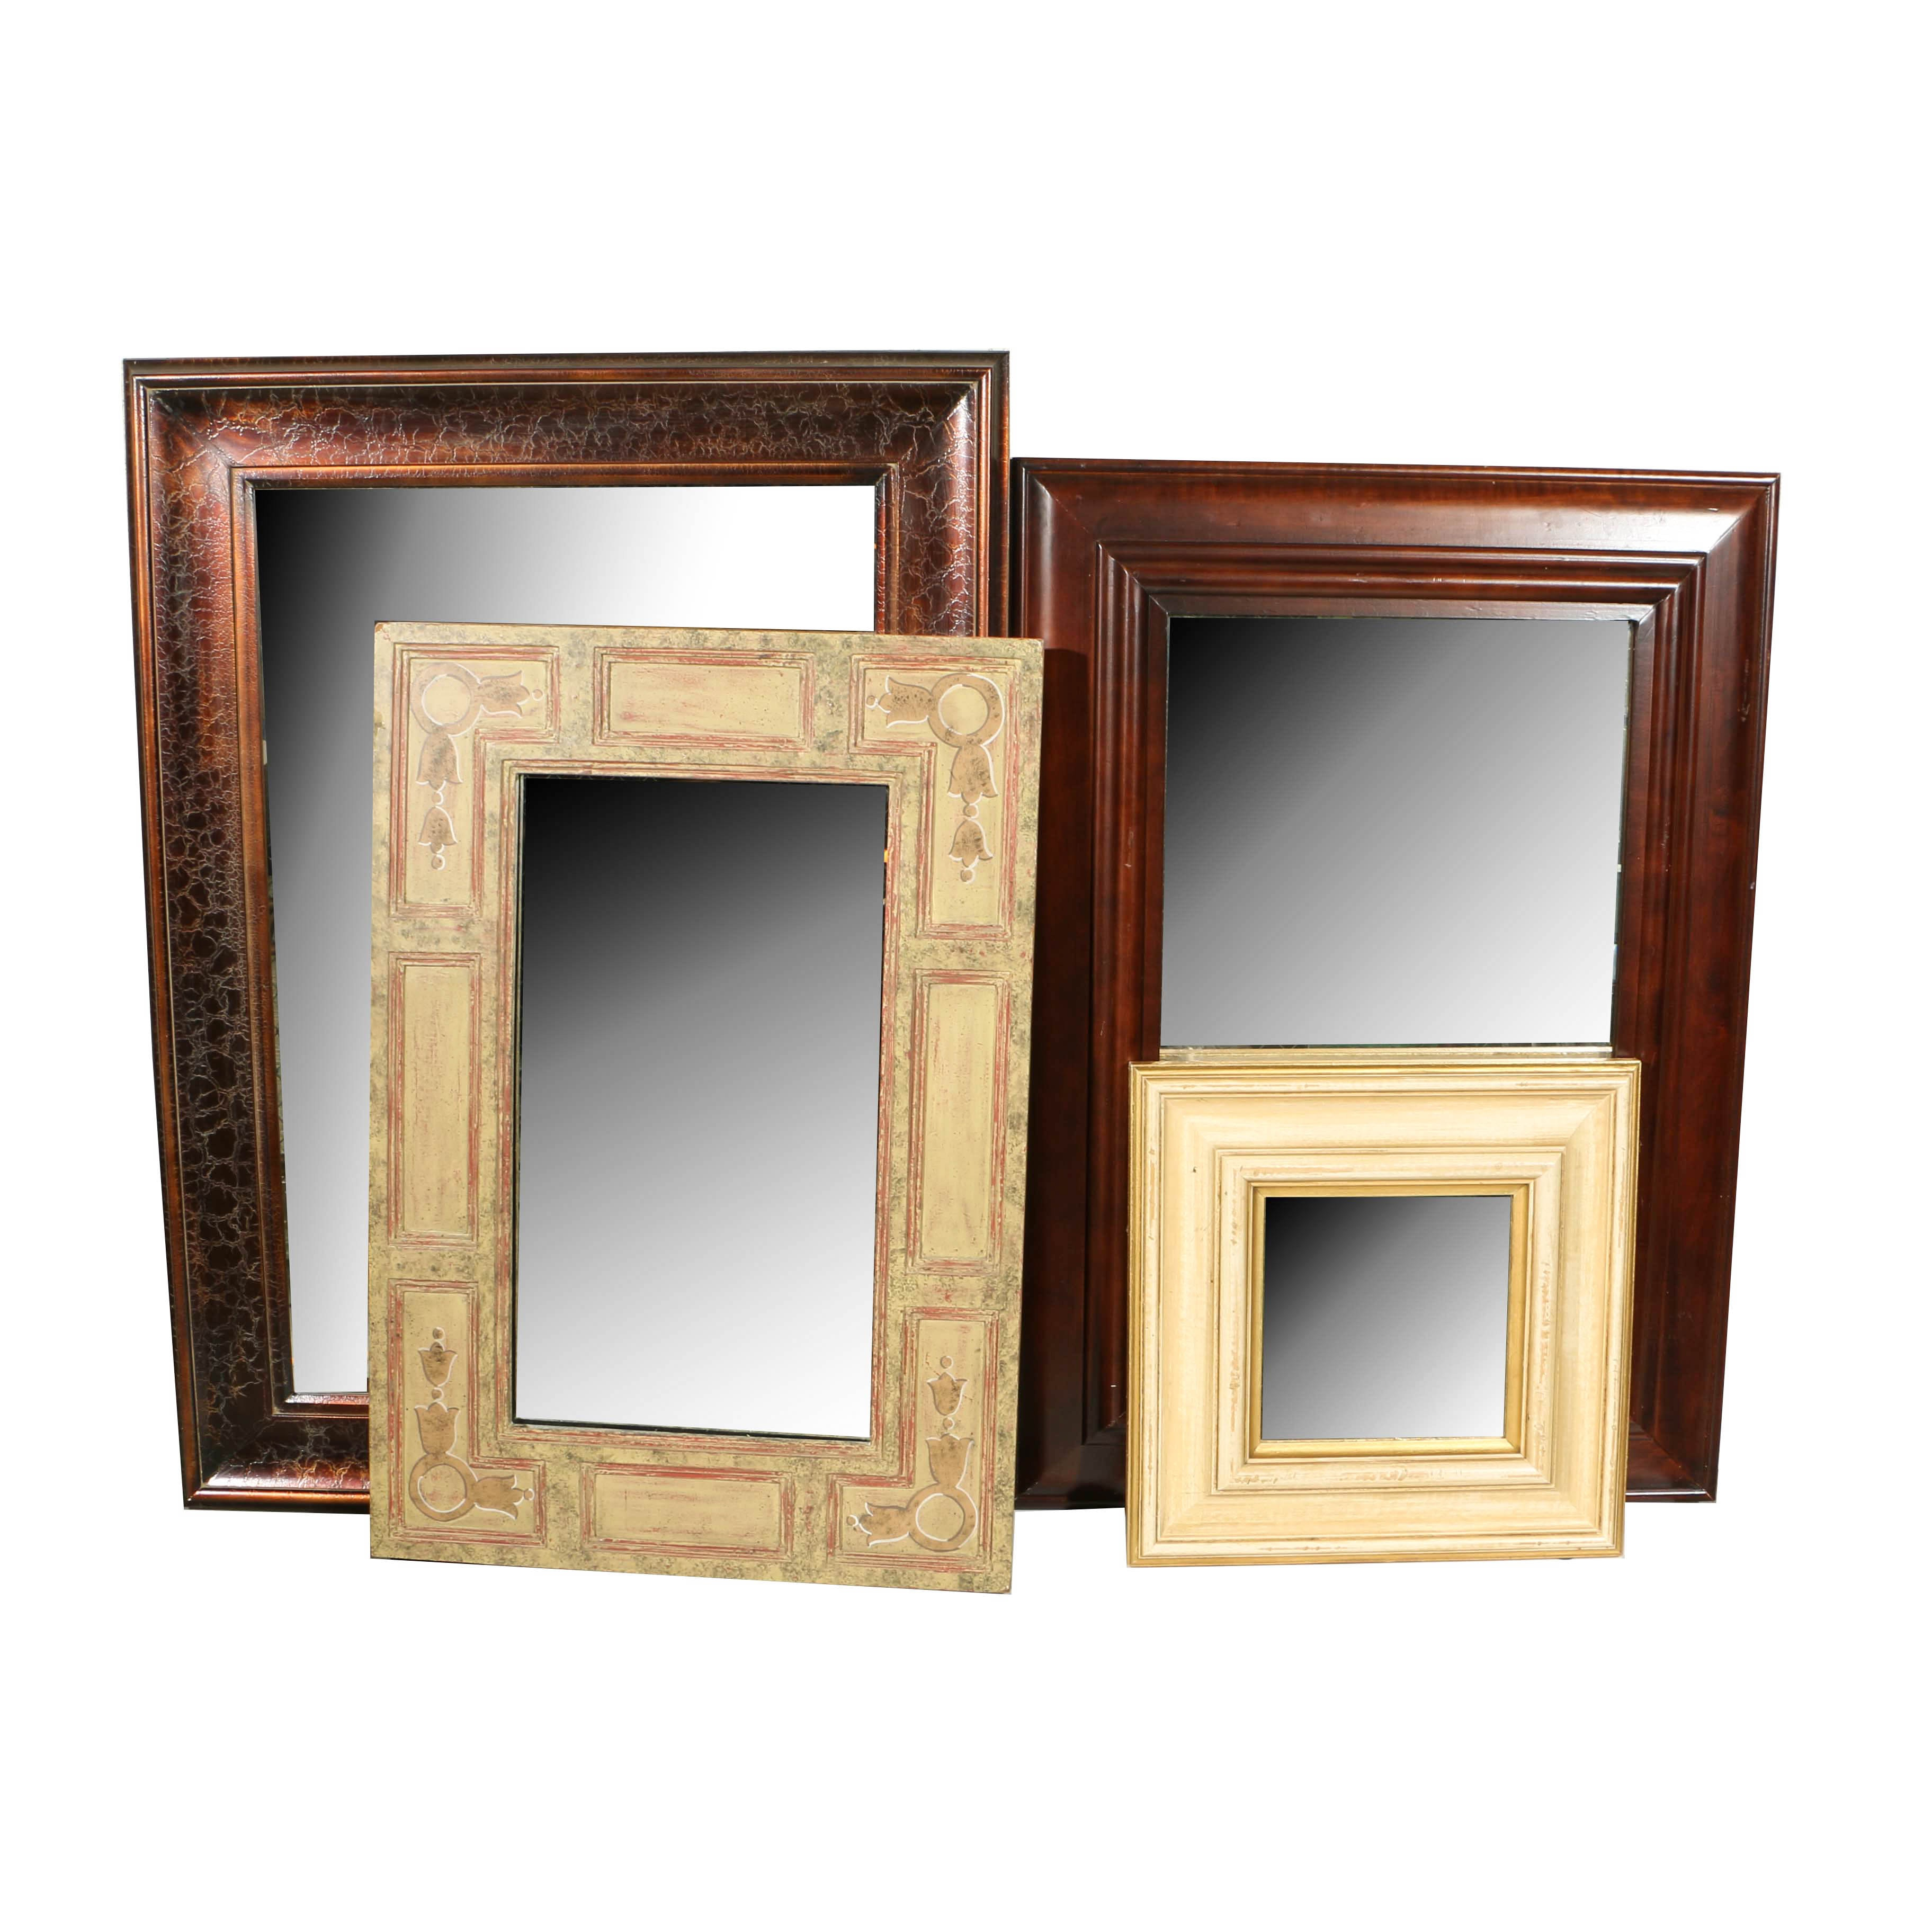 Four Decorative Wall Mirrors in Various Sizes